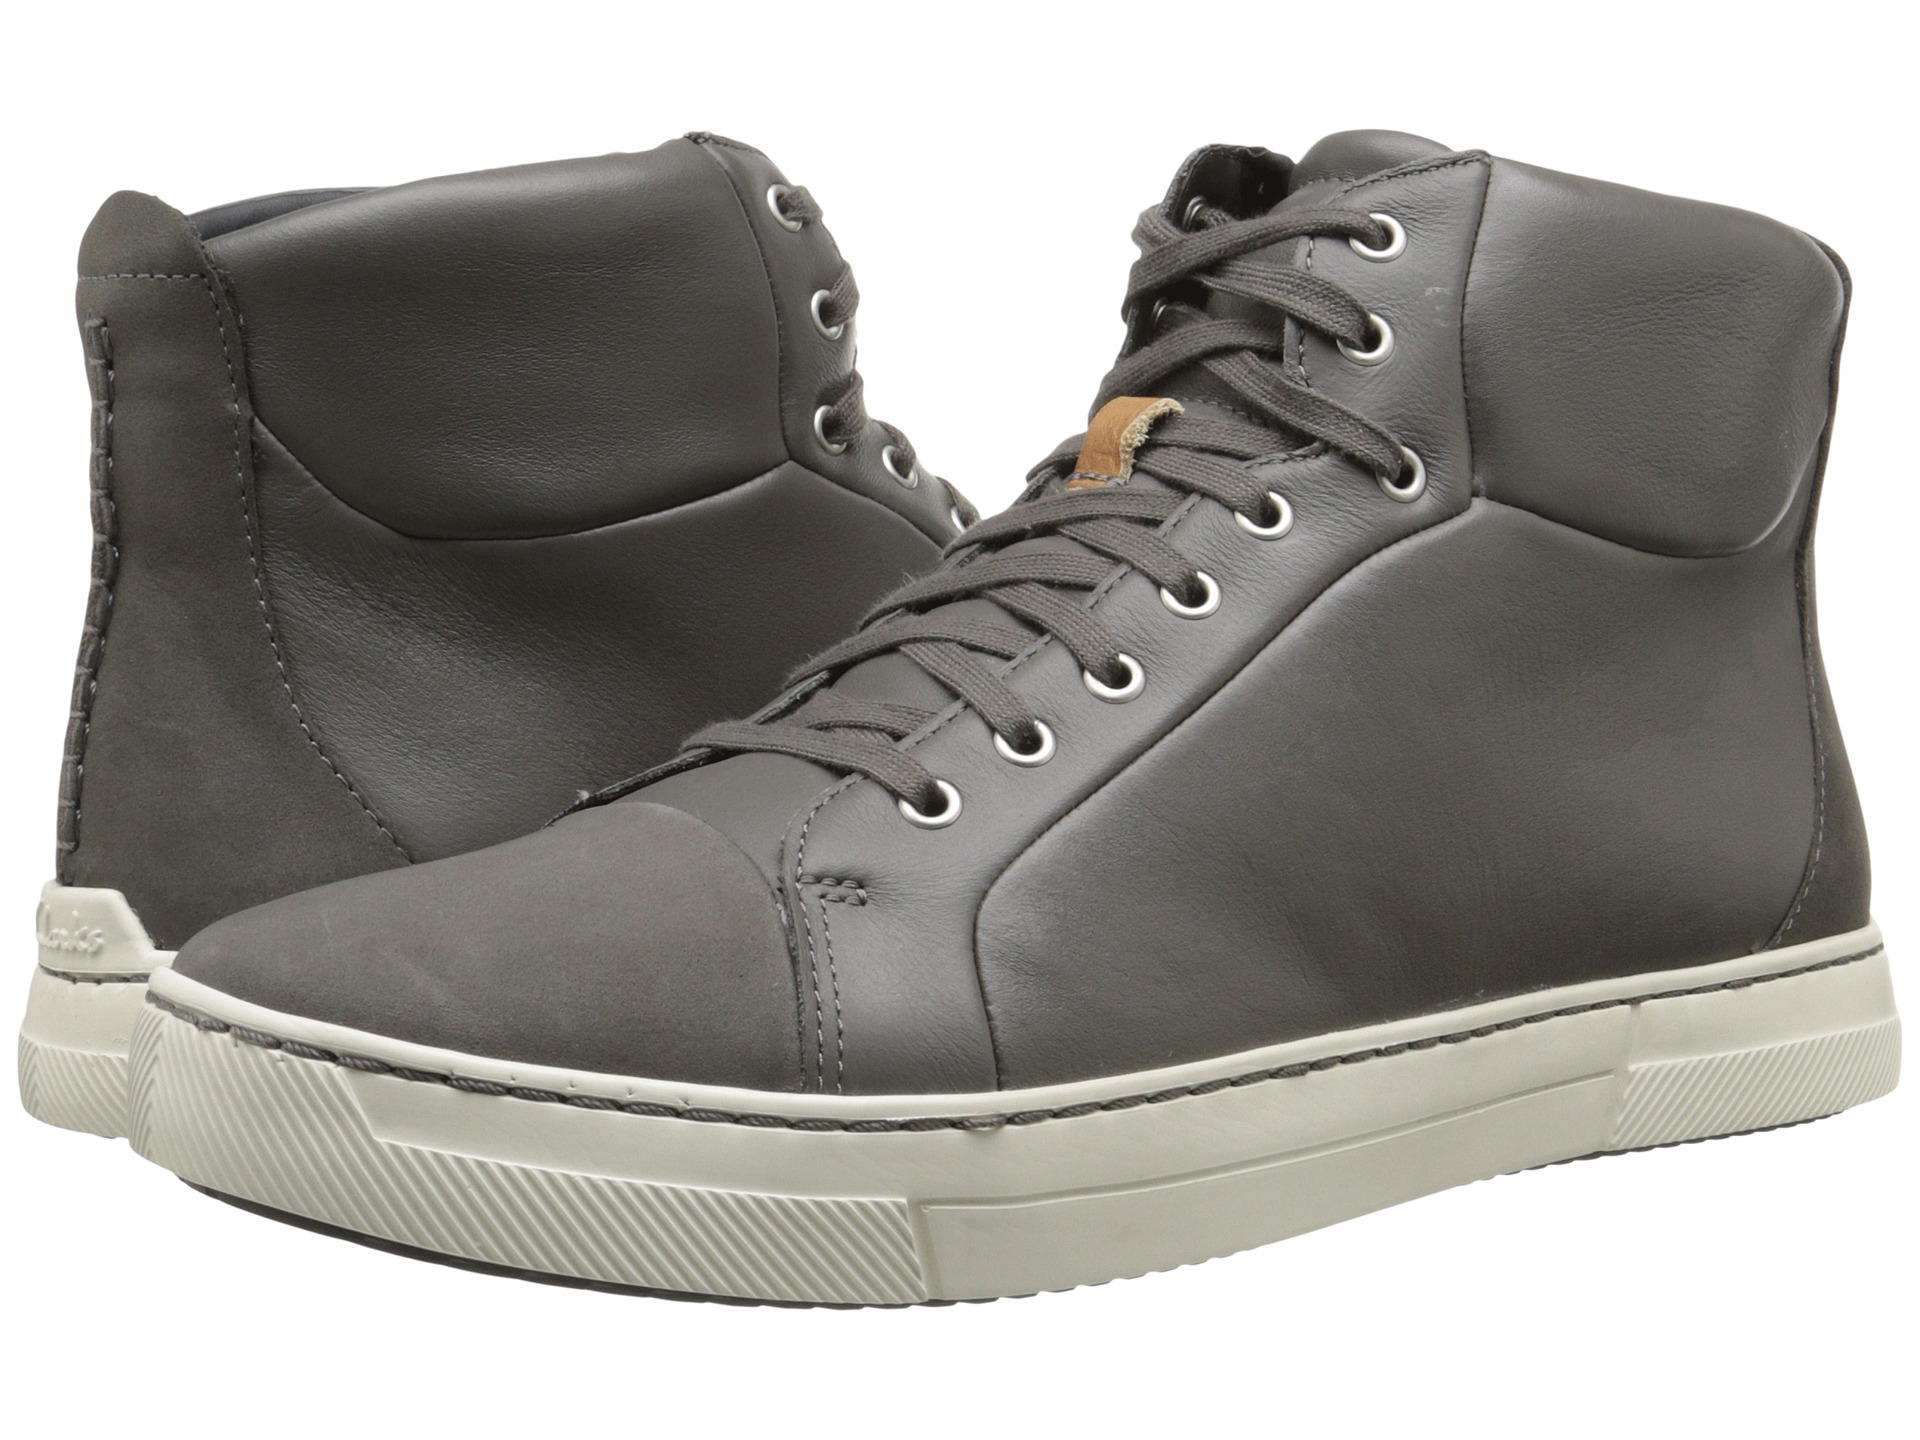 Clarks Ballof Hi- Grey Leather sneakers